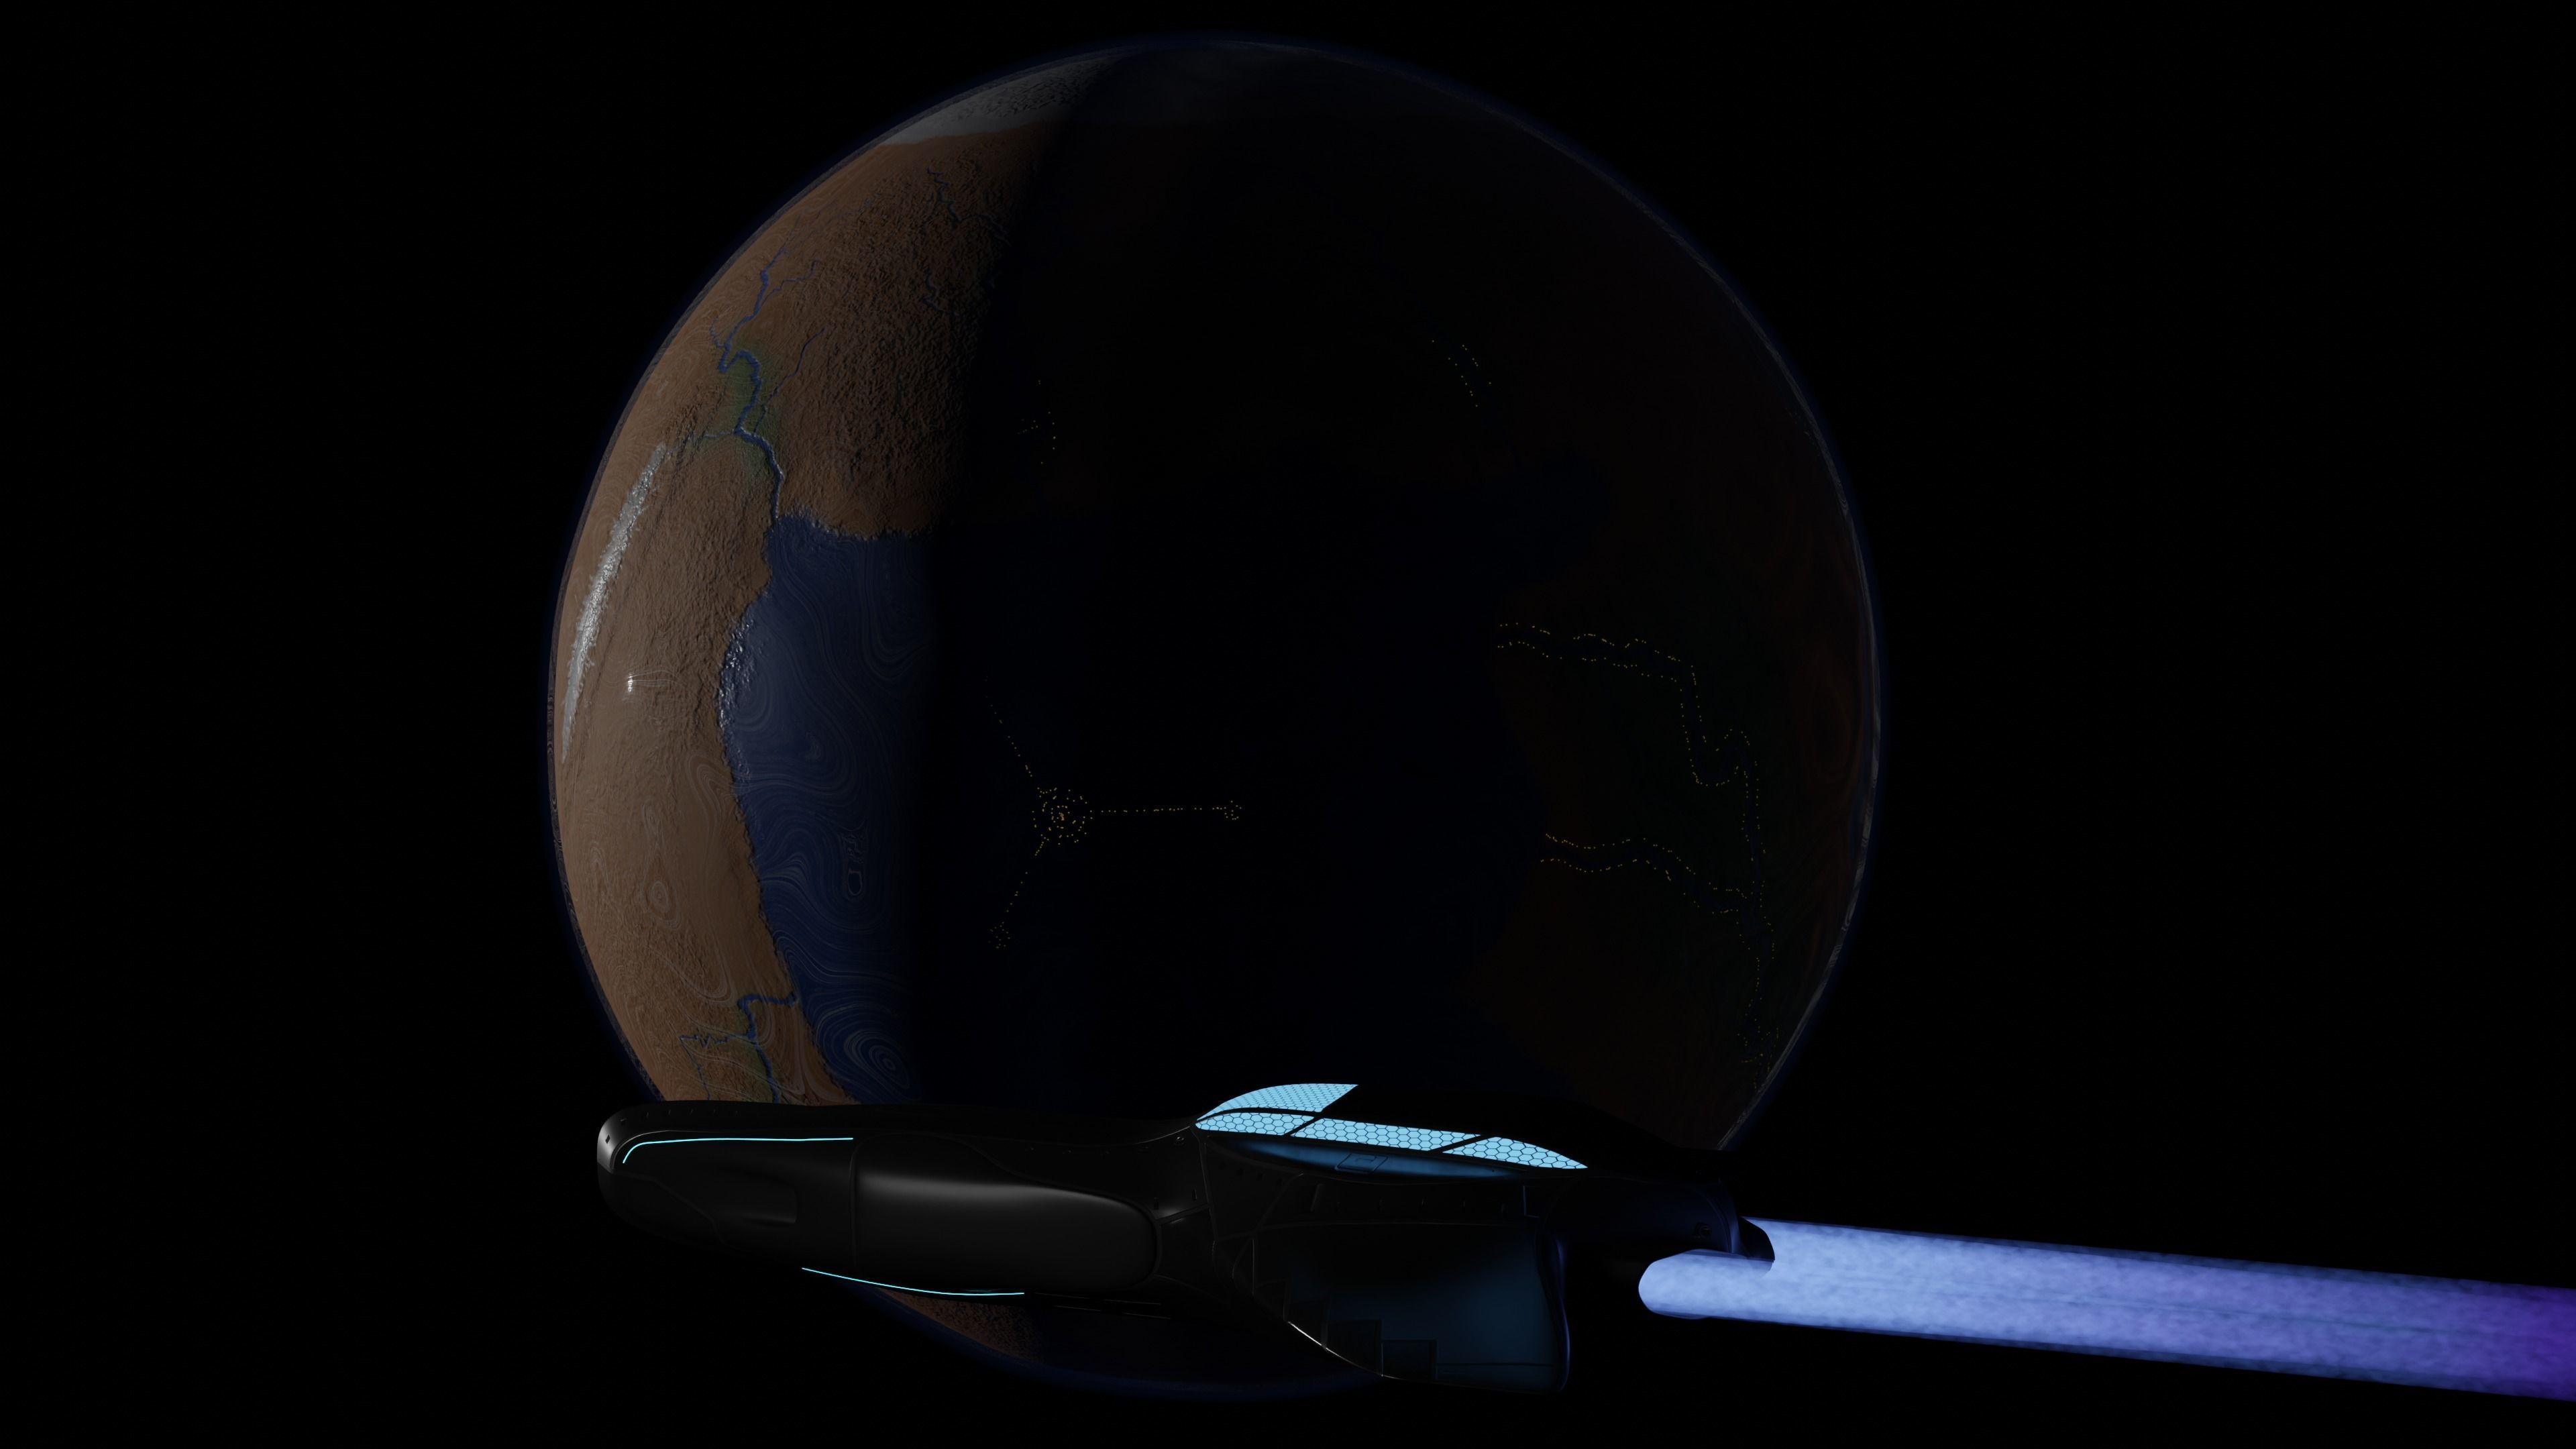 Planet and Spaceship